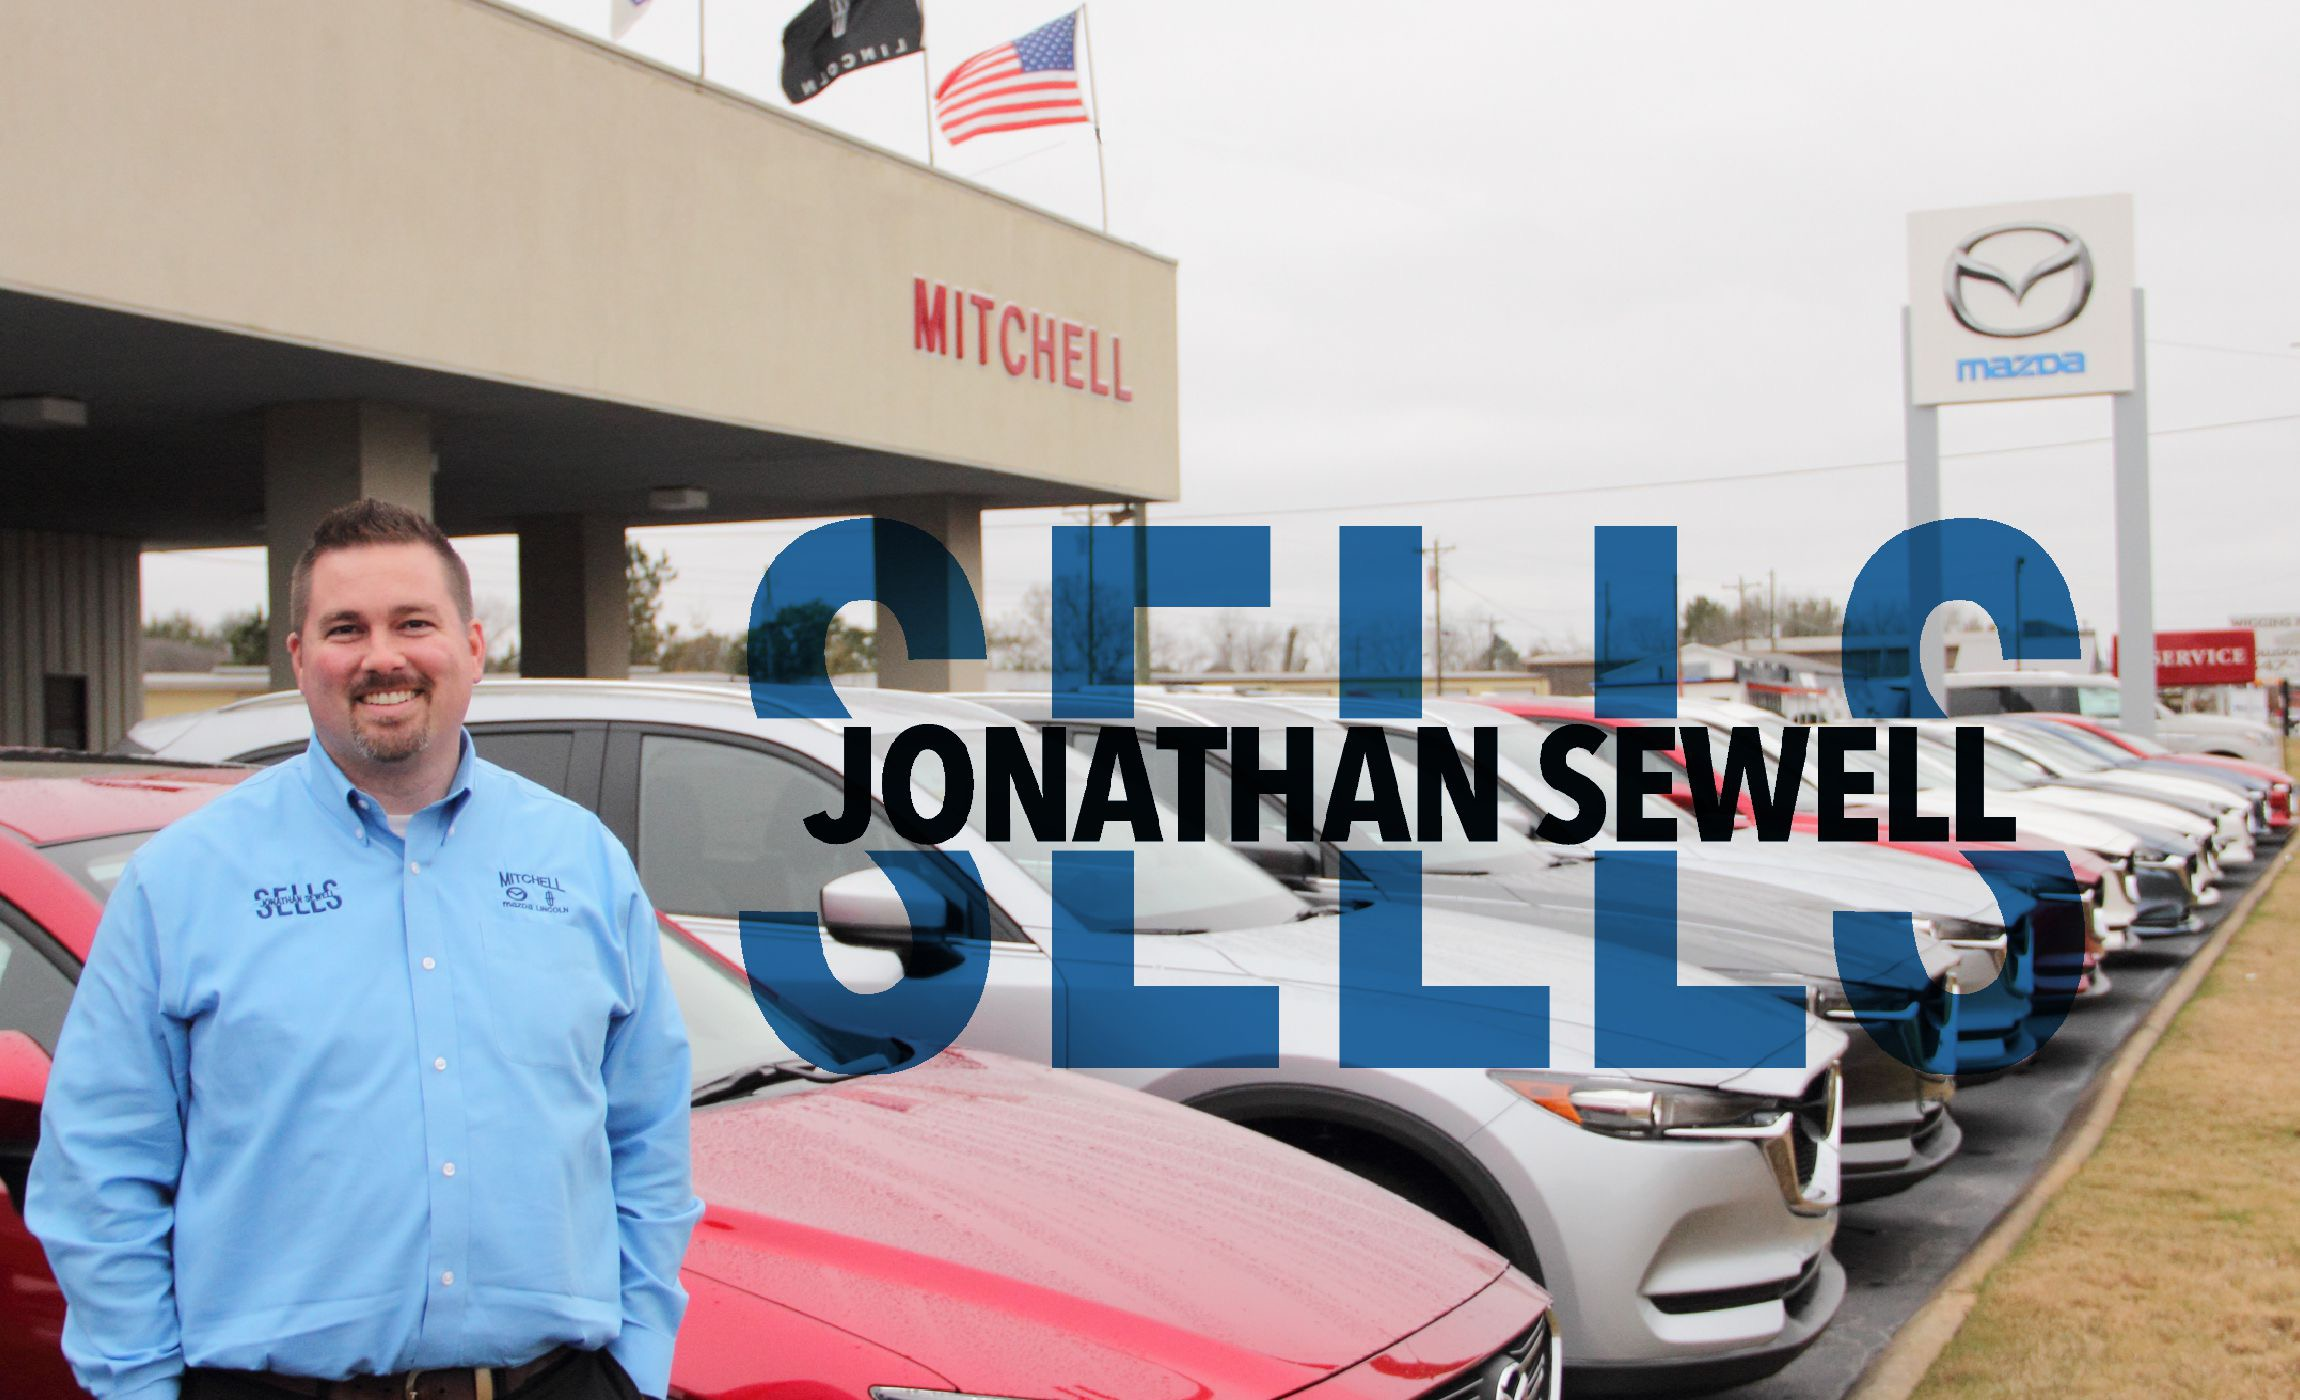 Jonathan Sewell Sells Always Here for You